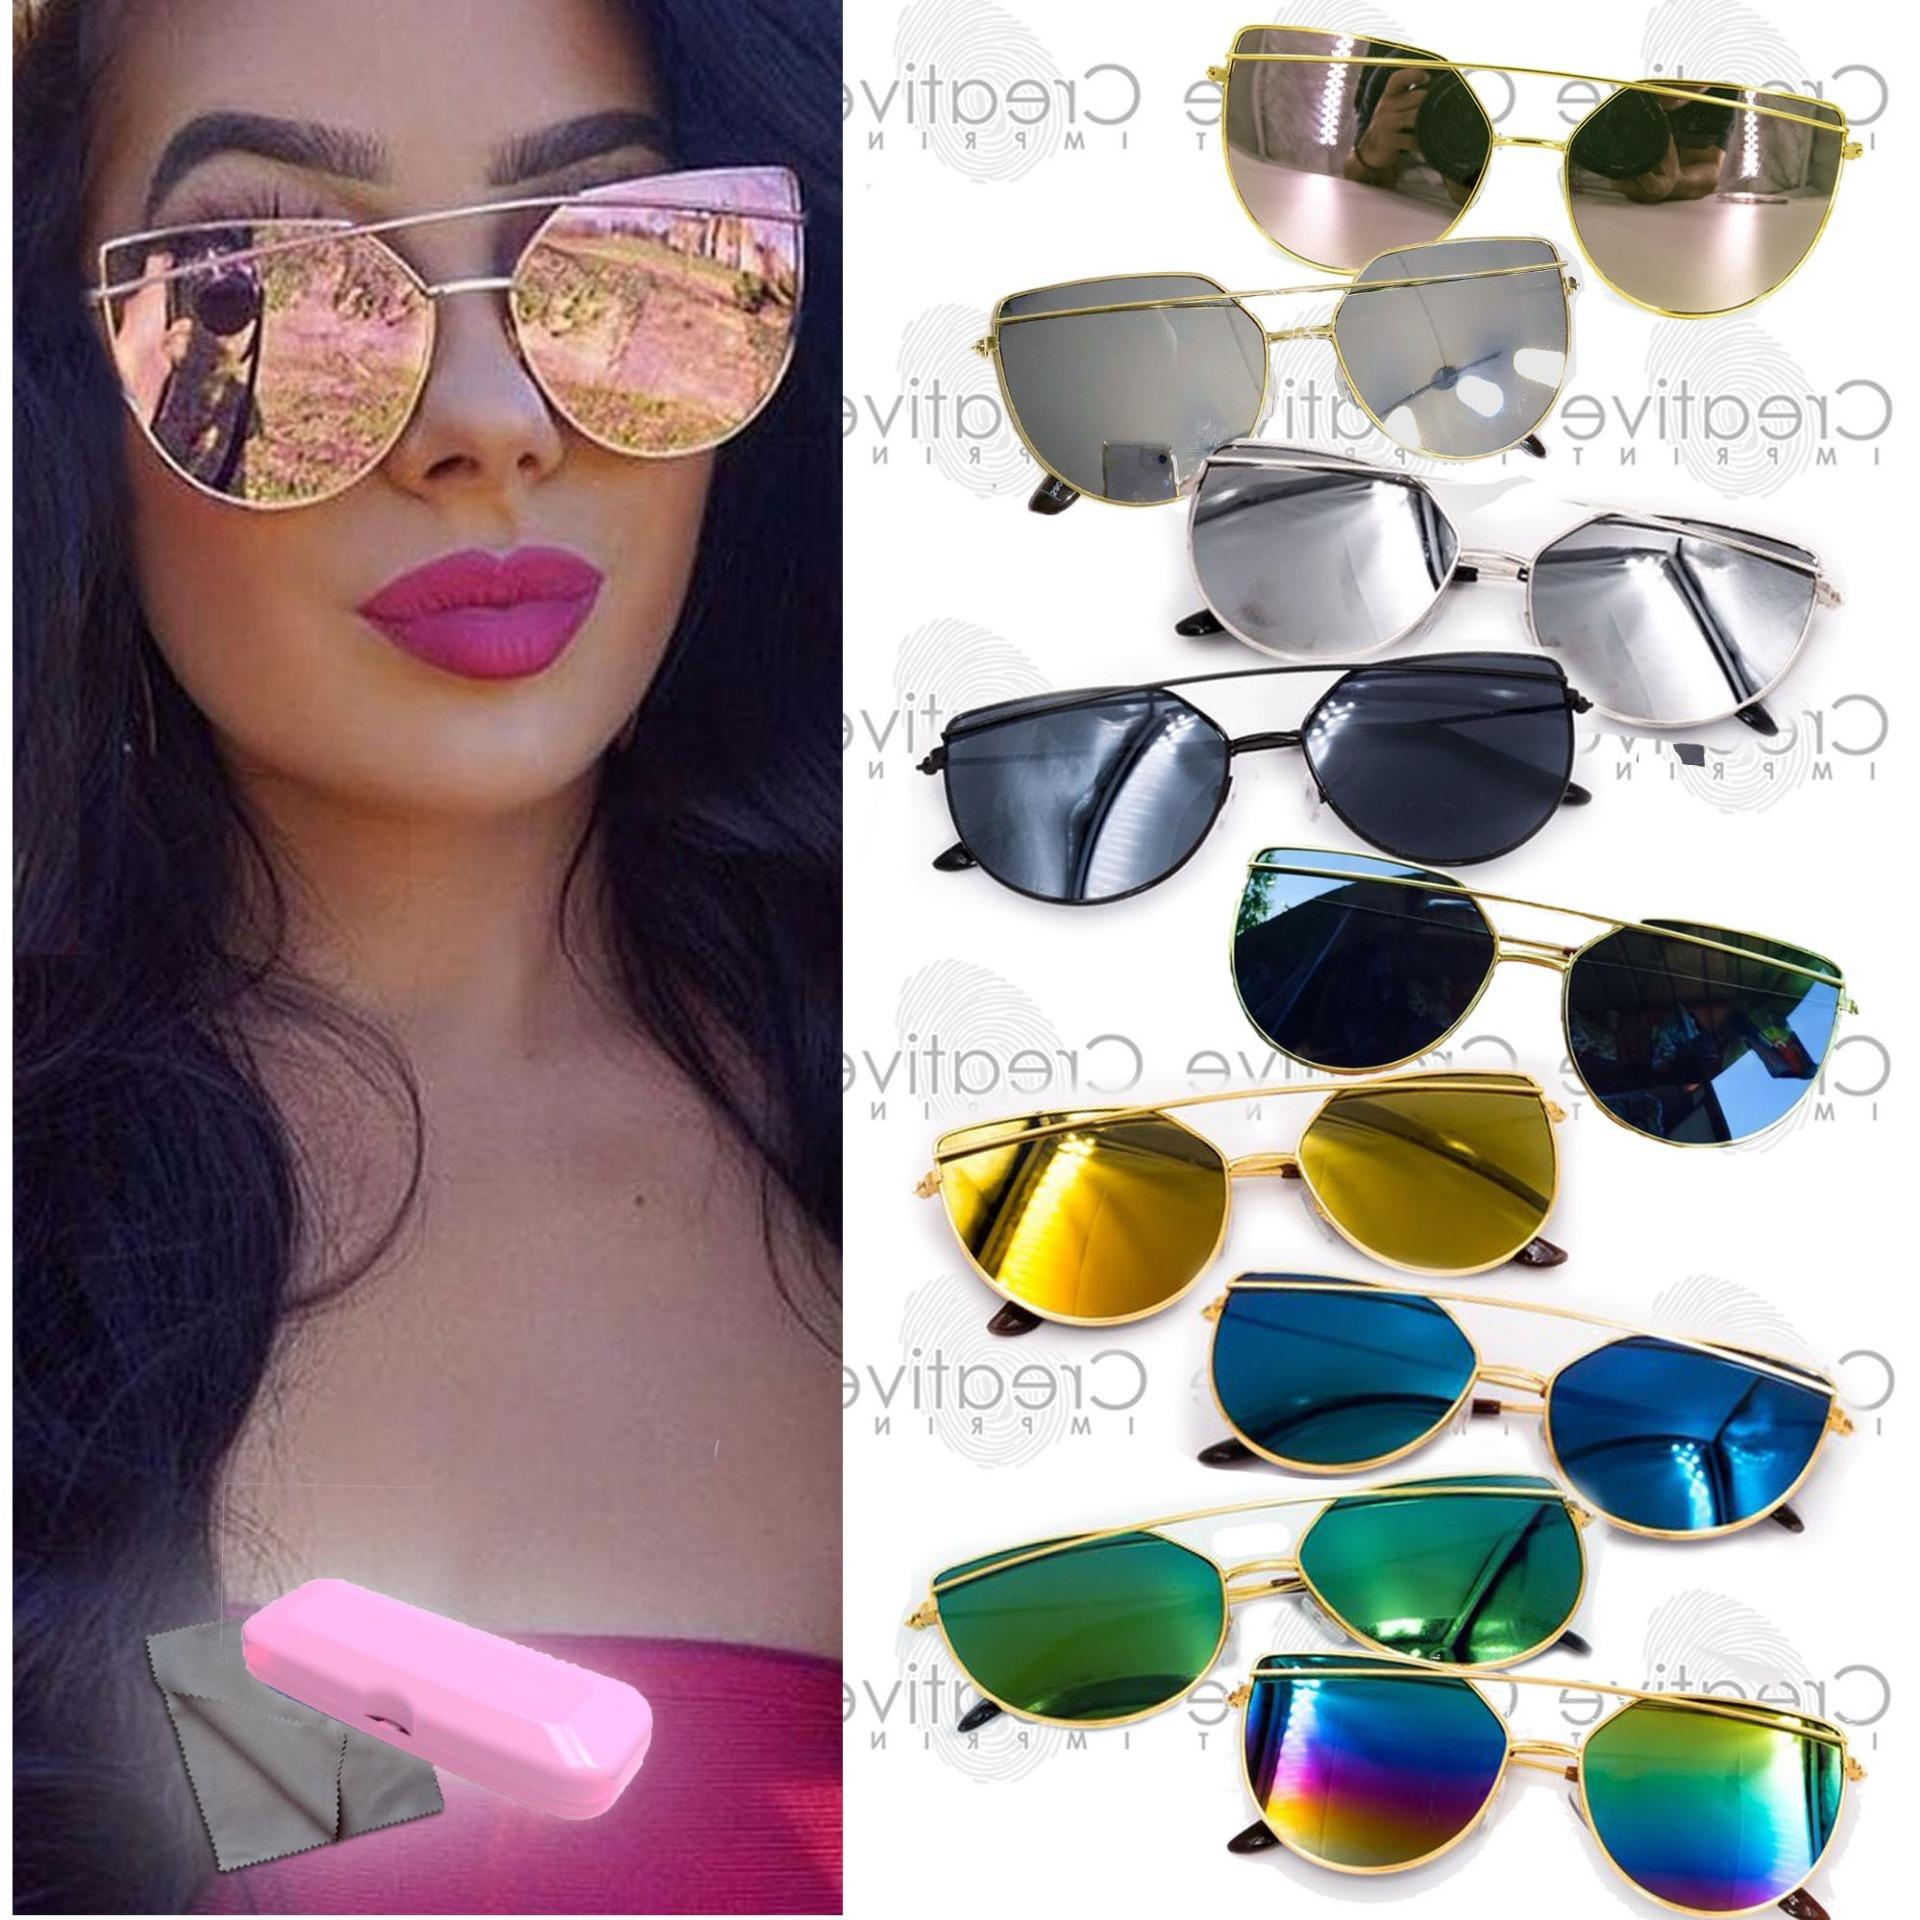 457493942c7 Double Bridge Cat Eye Flat Sunnies Sunglasses (FREE CASE WIPER) Shades  Light Metal Lens